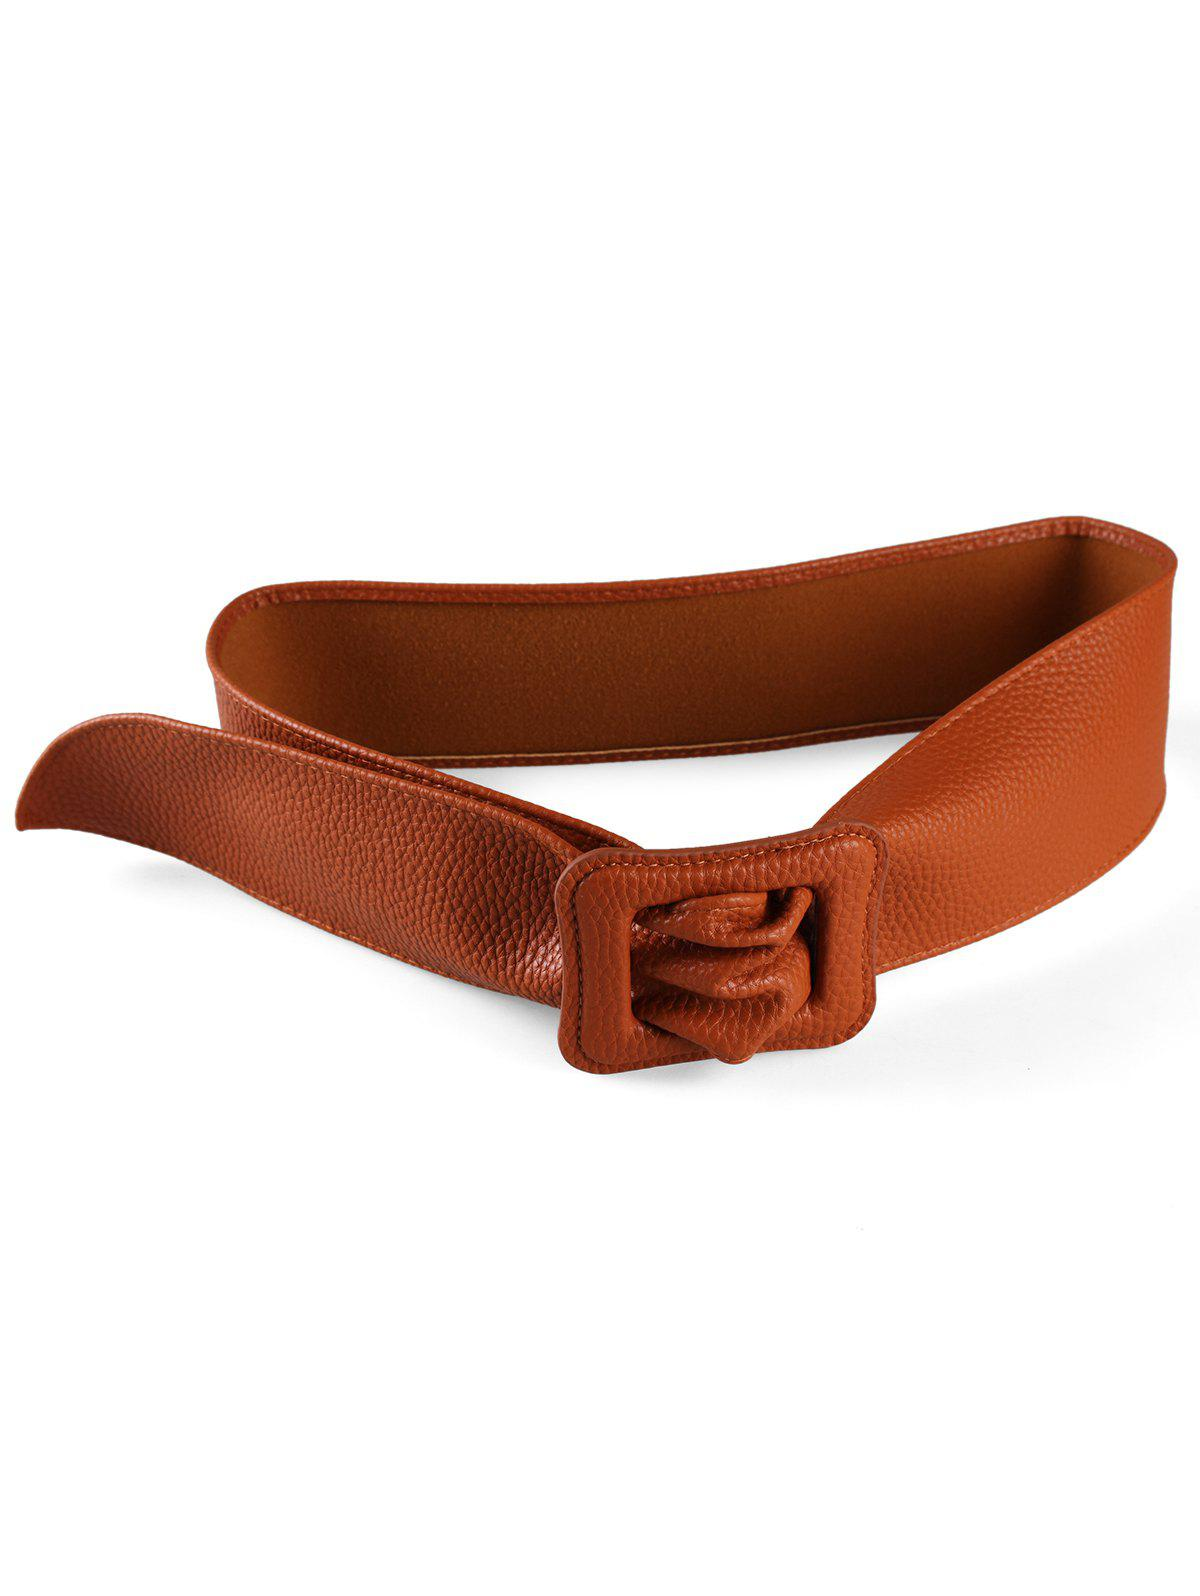 Shops PU Leather Square Buckle Wide Belt